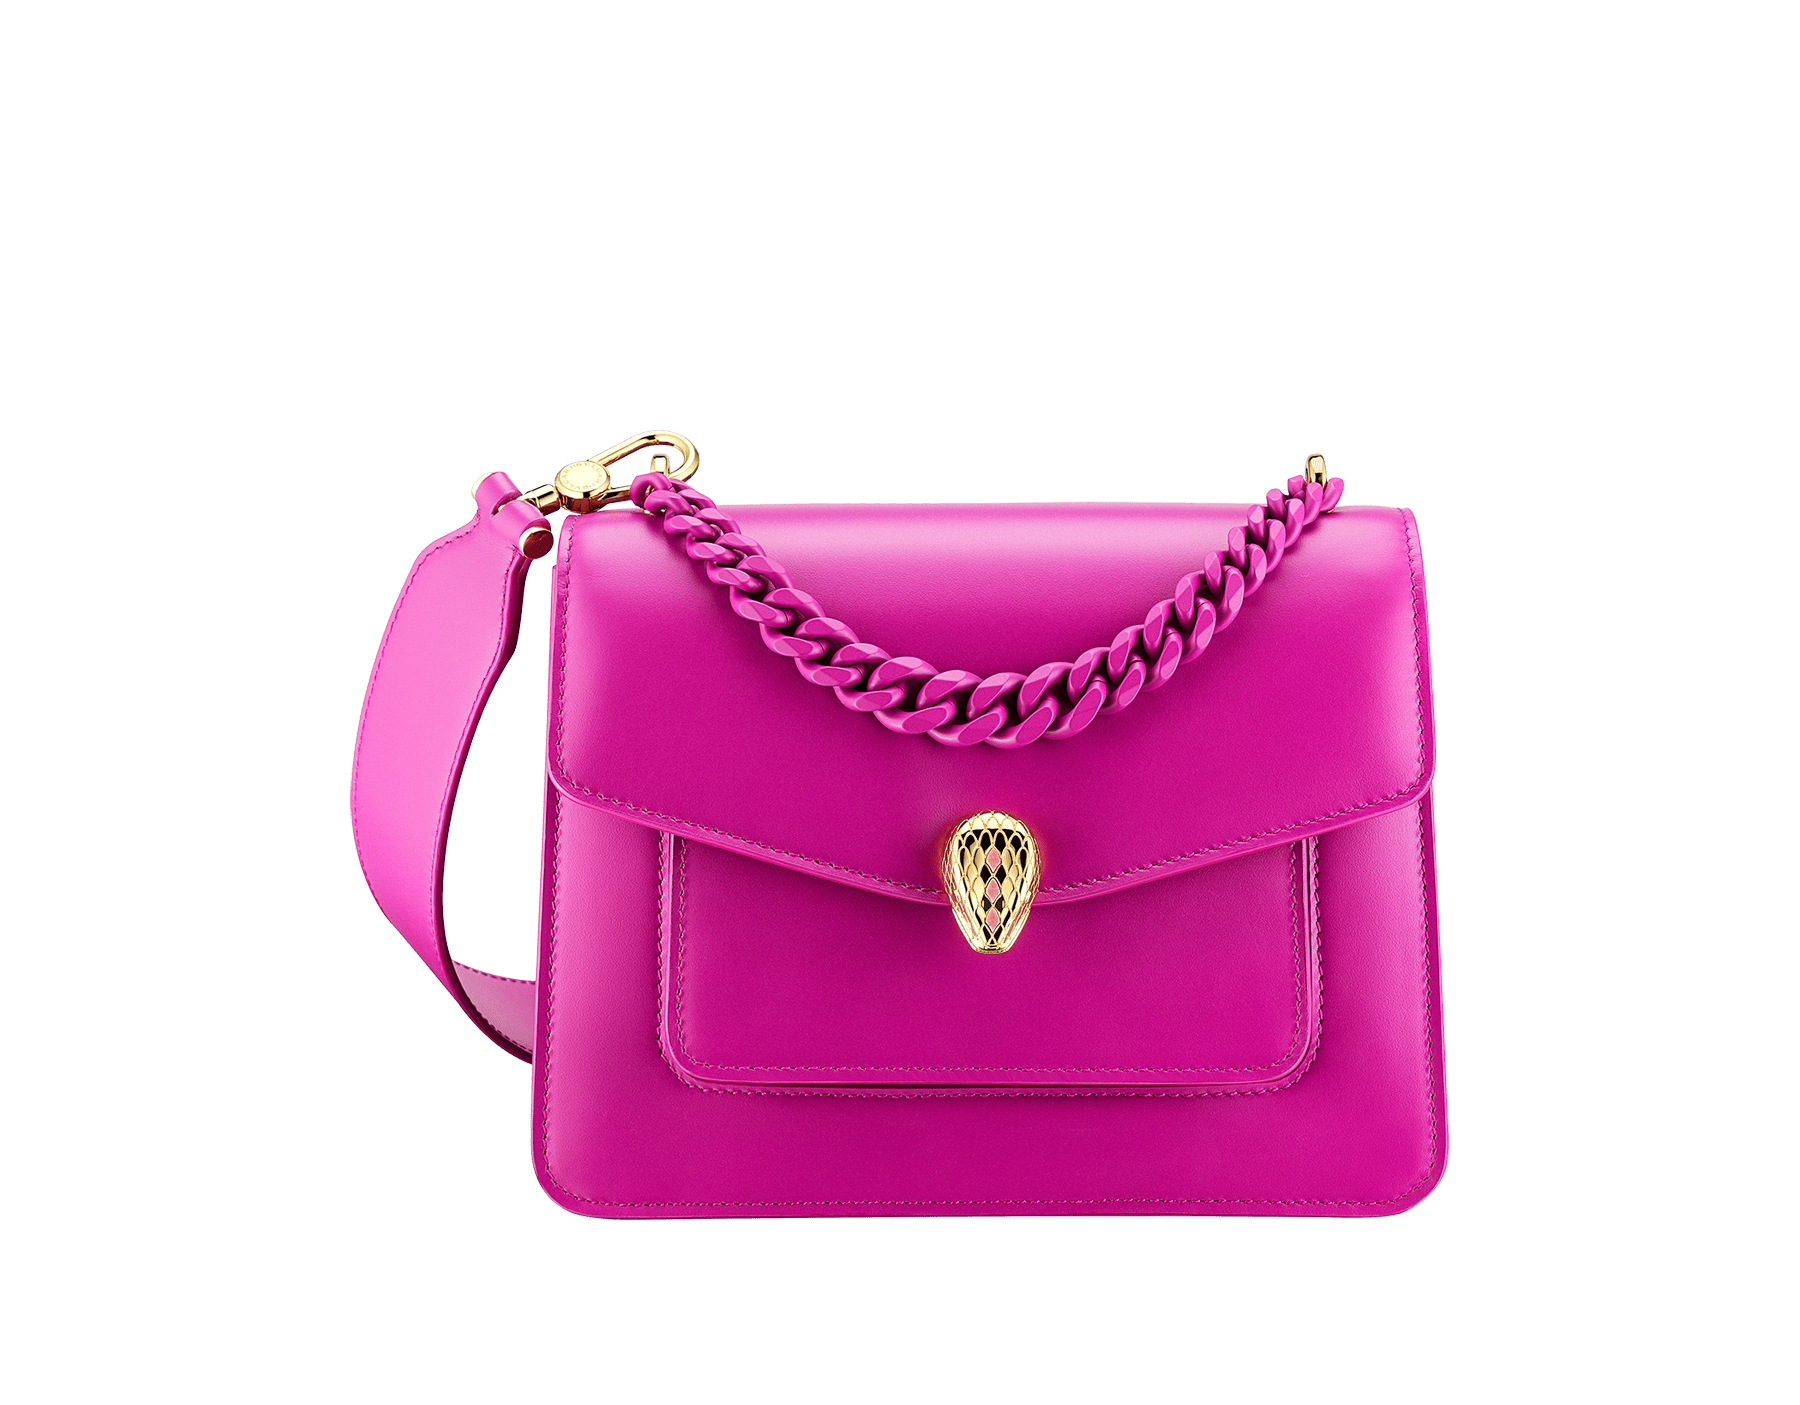 """Serpenti Forever"" small maxi chain crossbody bag in Magenta Spinel purple nappa leather, with Roman Garnet Bordeaux nappa leather inner lining. New Serpenti head closure in gold-plated brass, finished with small purple rhodonite scales in the middle and red enamel eyes. 1134-MCN image 1"